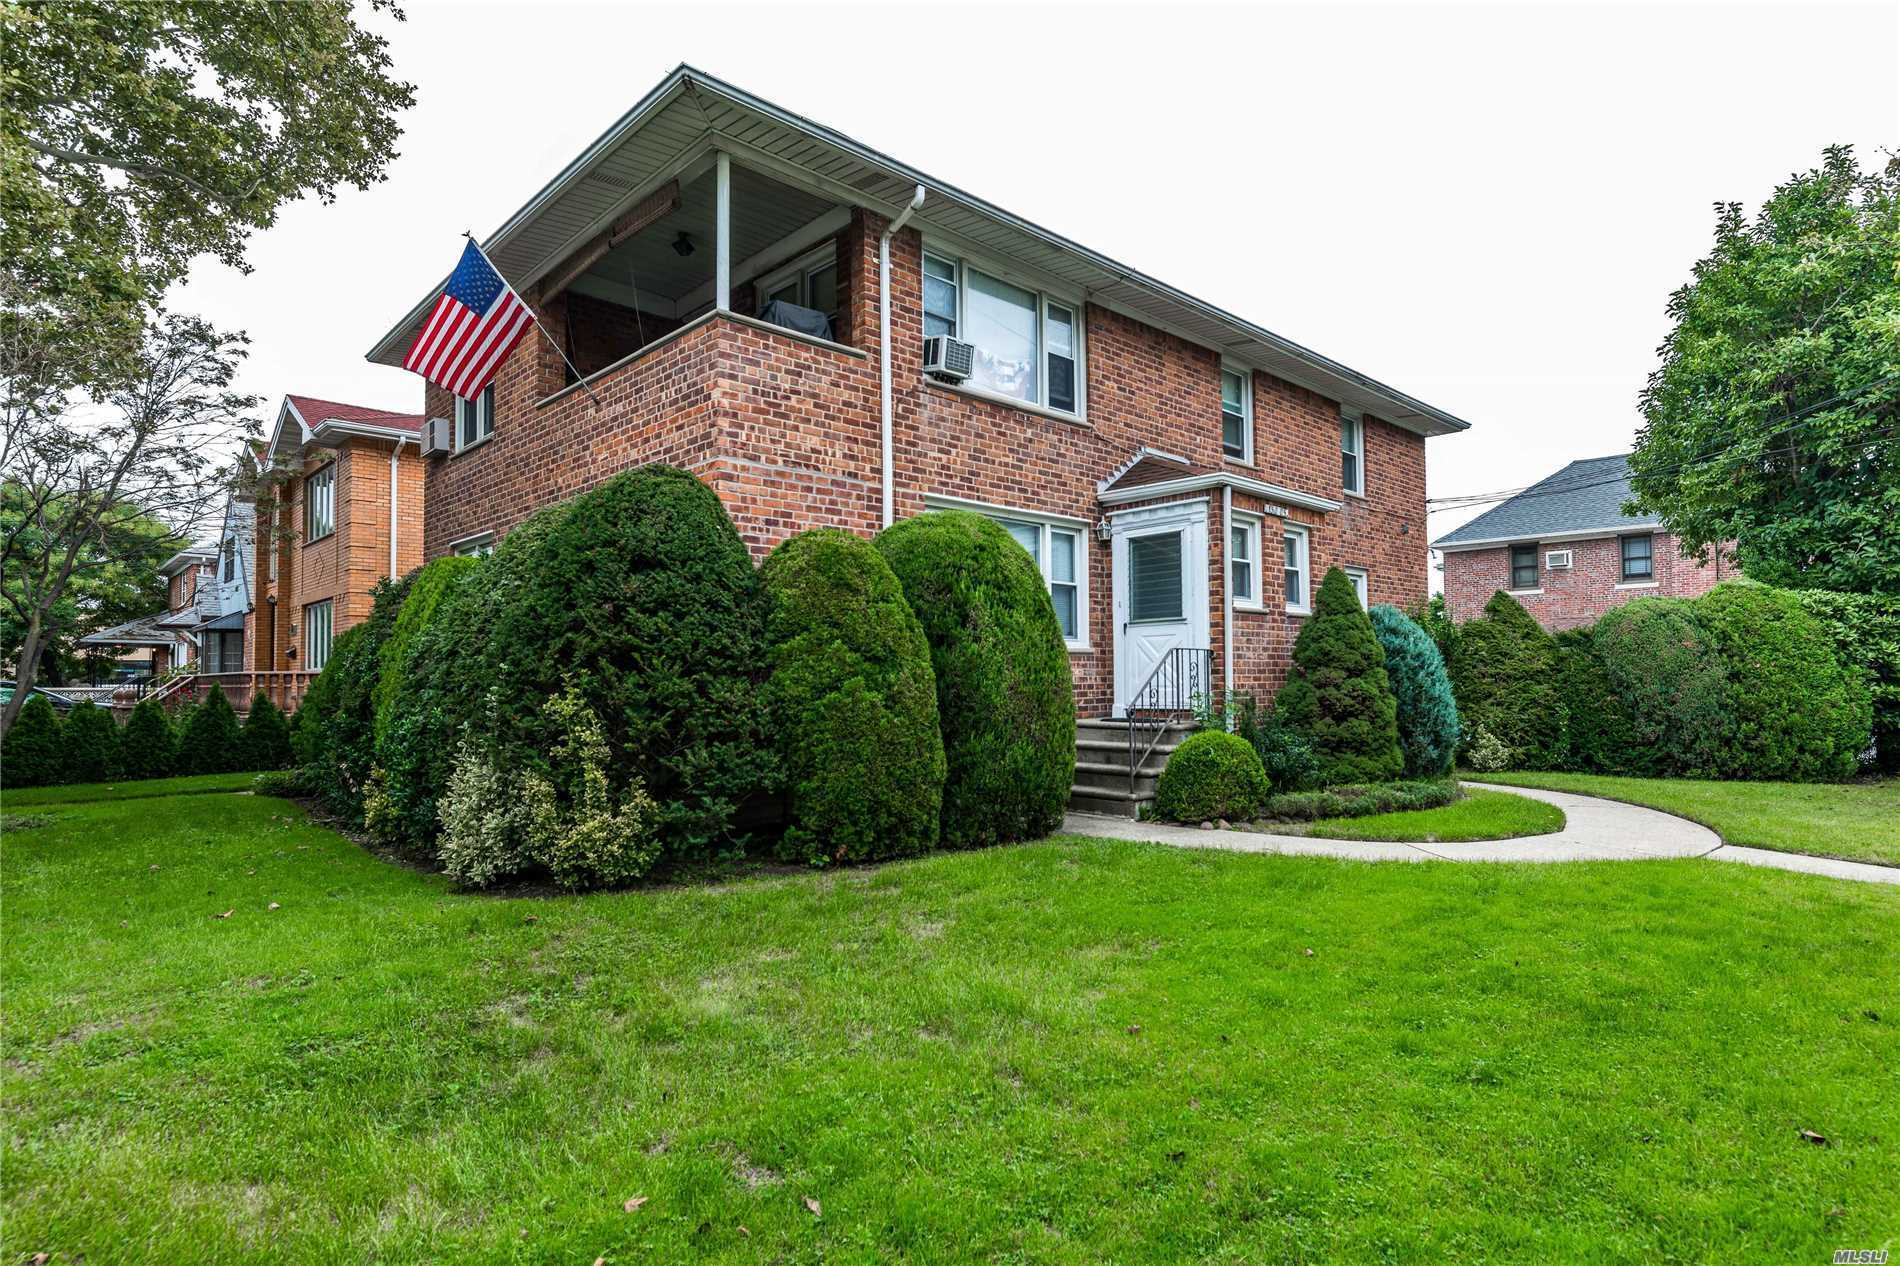 Solid Investment! Detached Brick 2 Family In Prime Whitestone Near The Flushing Border. Over 5600 Sqft Of Land. Each Apartment Consists Of Lr, Fdr, Eik, 3 Bedrooms And 2 Full Baths. 1, 274 Sqft Of Living Space Per Unit, Plus A Fully Finished Basement. Gas Heat. Cedar Closet. Detached 2 Car Garage. Near Schools, Shops And Transportation. Super Short Distance To The Bus Stop. A True Income Producer!